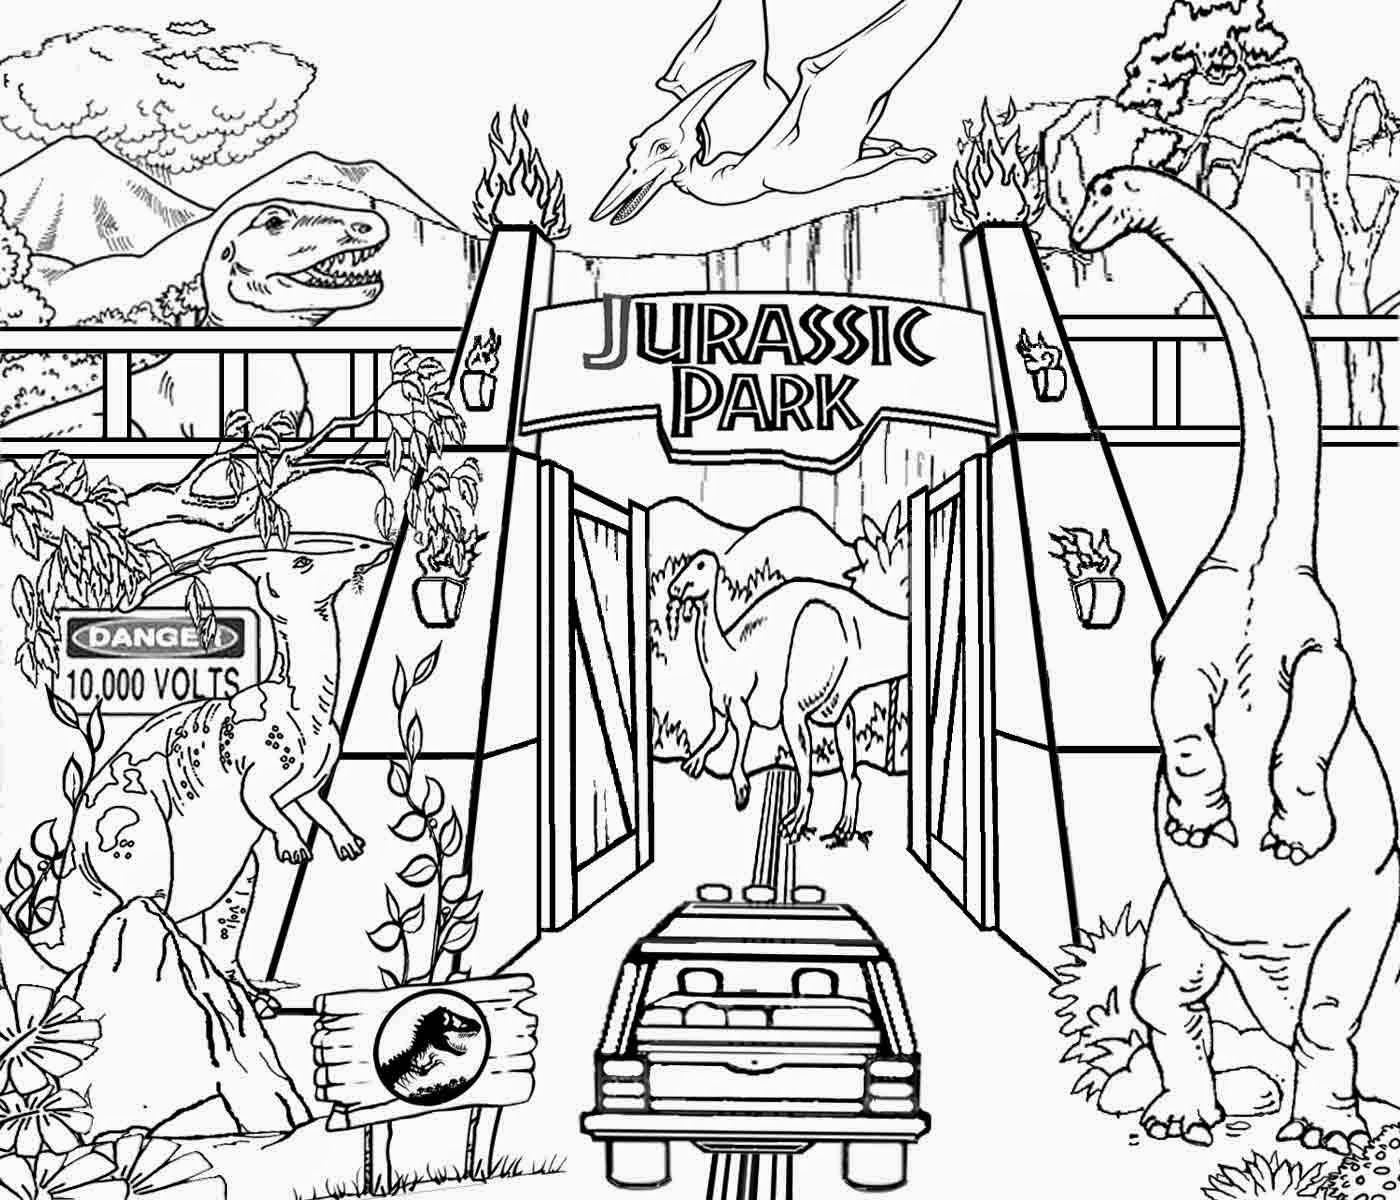 Detailed Printable High Resolution Free Clipart Jurassic Park Dinosaur Coloring Pages For Older K Dinosaur Coloring Pages Lego Coloring Pages Dinosaur Coloring